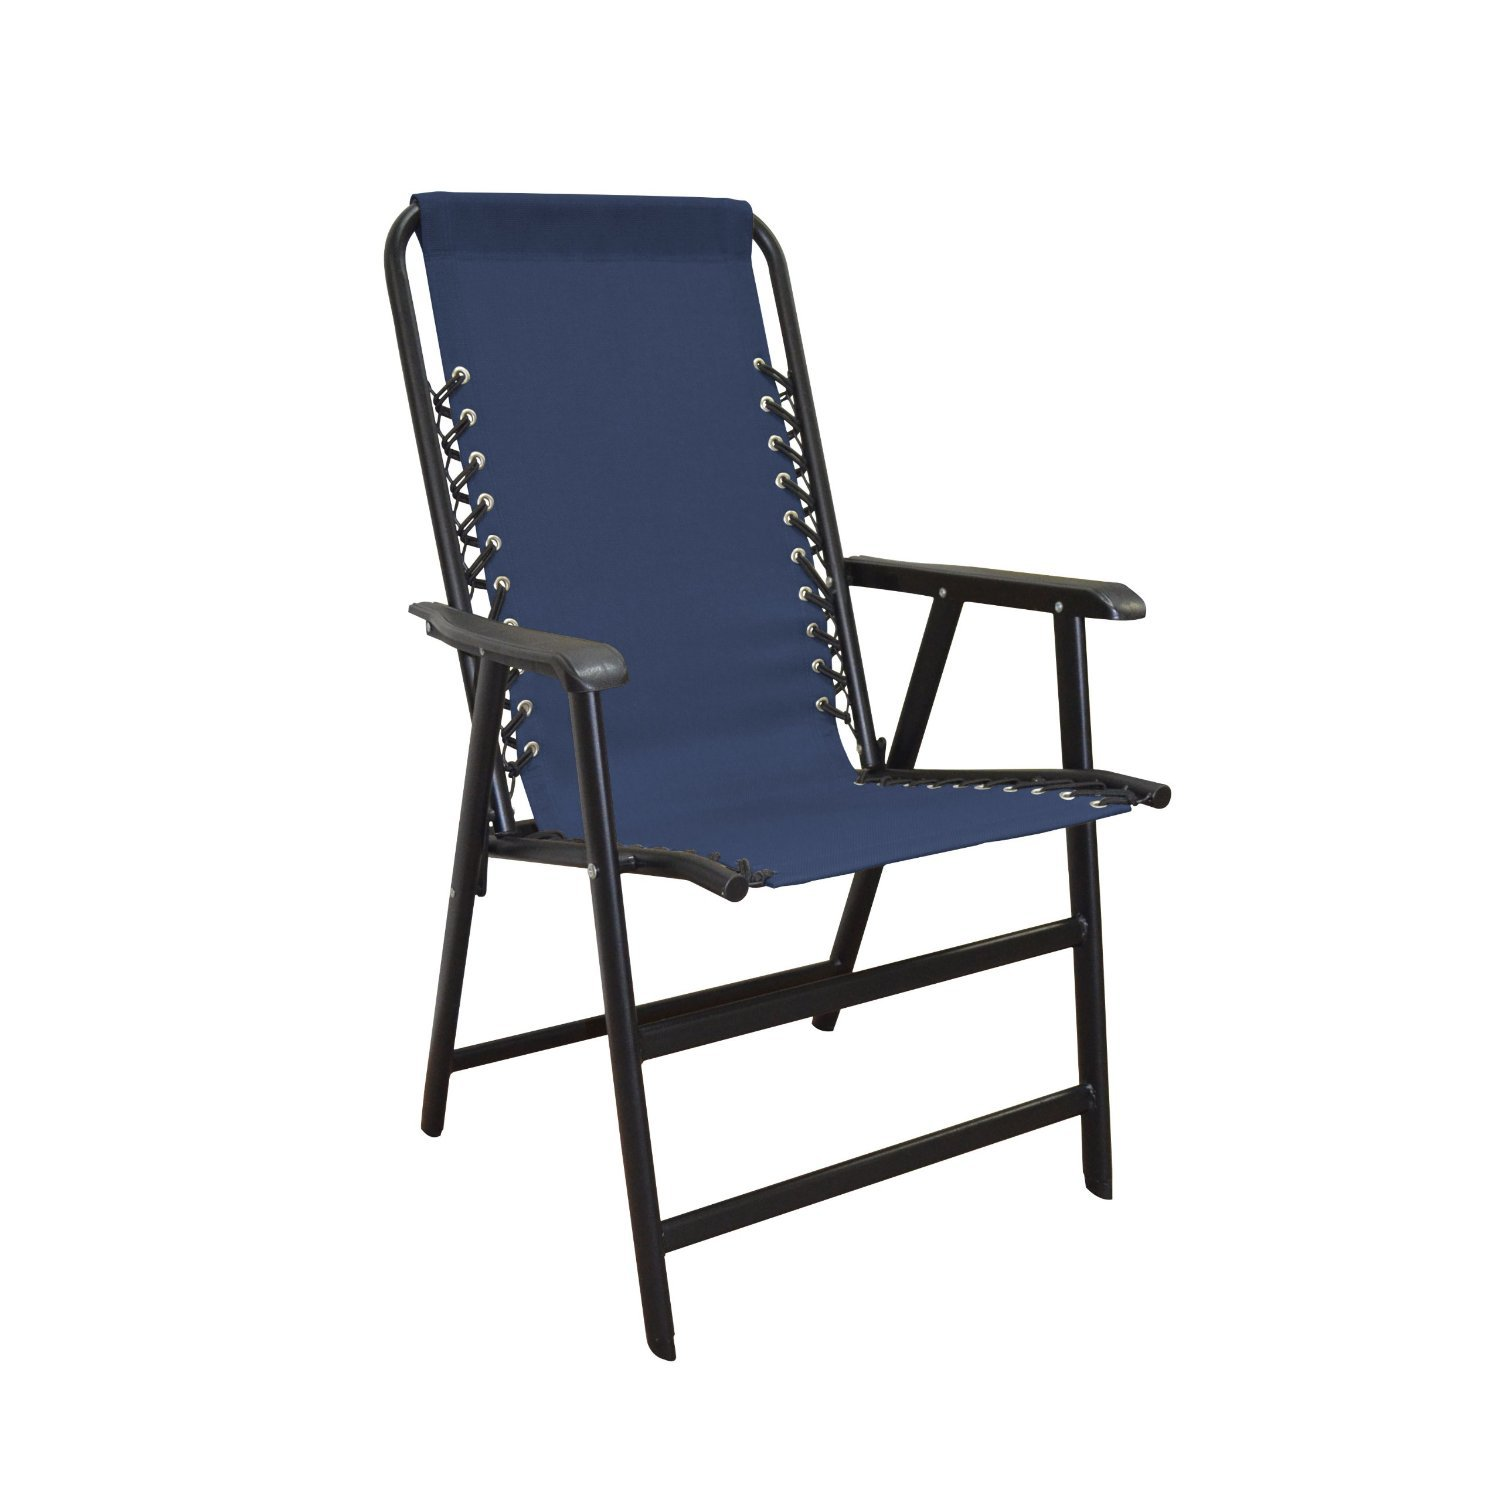 Caravan Blue Folding Bungee Chair Shop Furniture at HEB